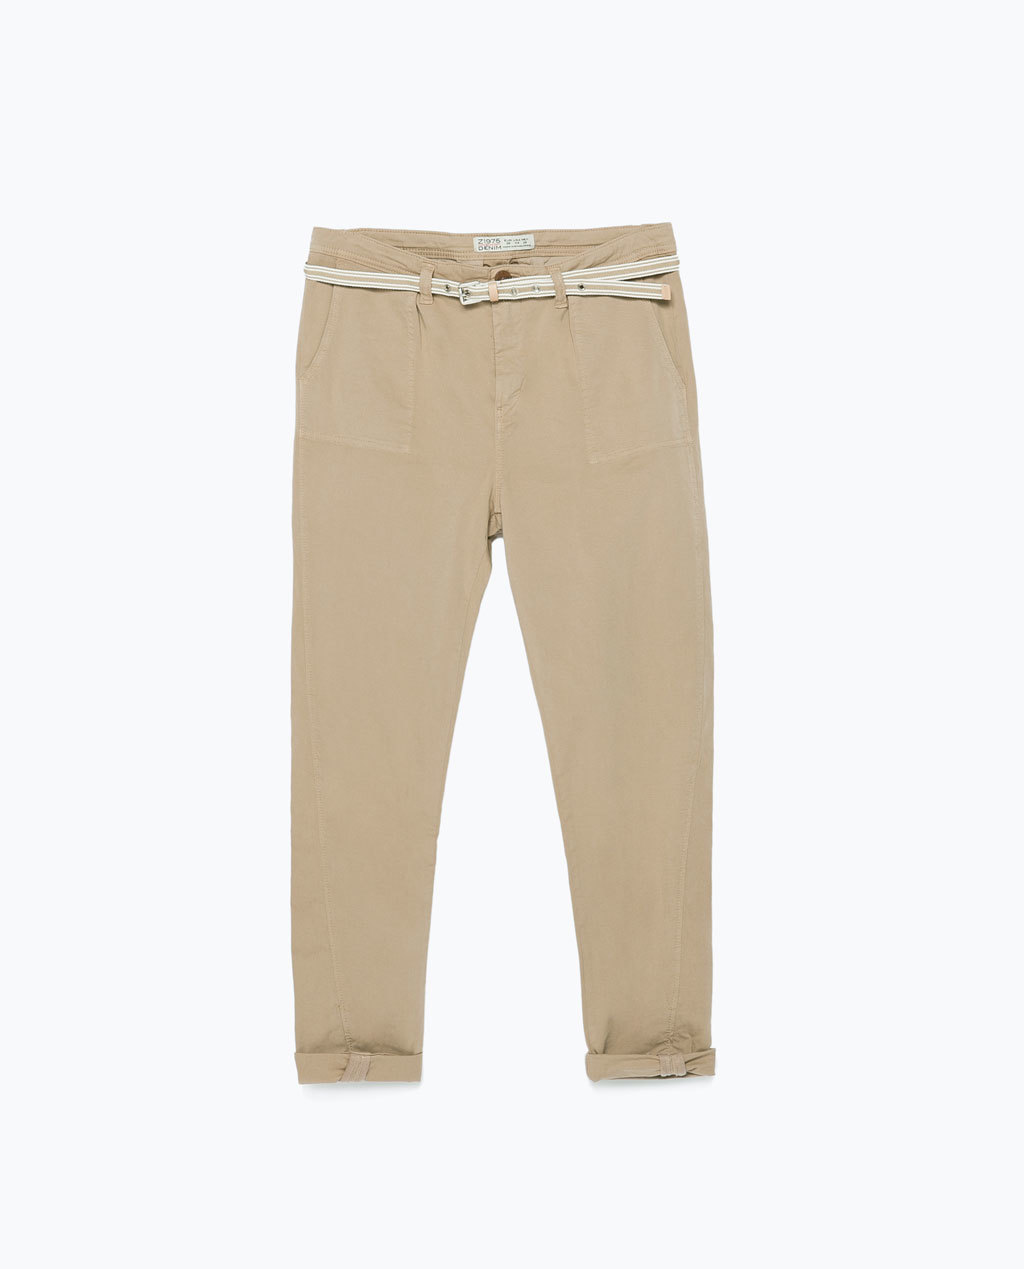 Topstitched Chinos - pattern: plain; pocket detail: small back pockets, pockets at the sides; waist detail: belted waist/tie at waist/drawstring; waist: mid/regular rise; predominant colour: stone; occasions: casual; length: ankle length; style: chino; fibres: cotton - mix; texture group: cotton feel fabrics; fit: tapered; season: s/s 2015